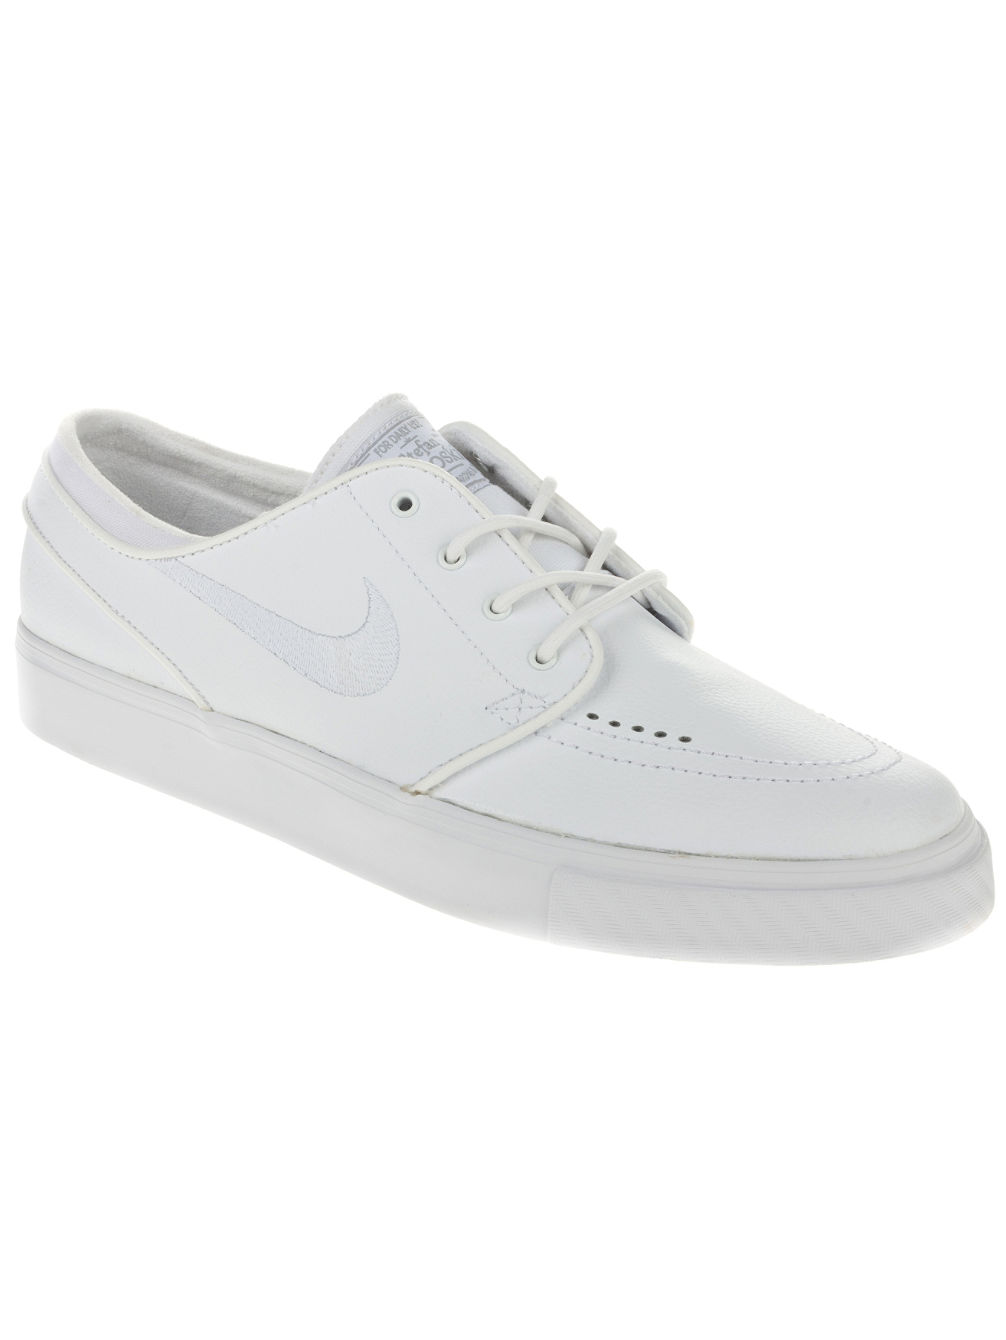 Zoom Stefan Janoski L Skate Shoes